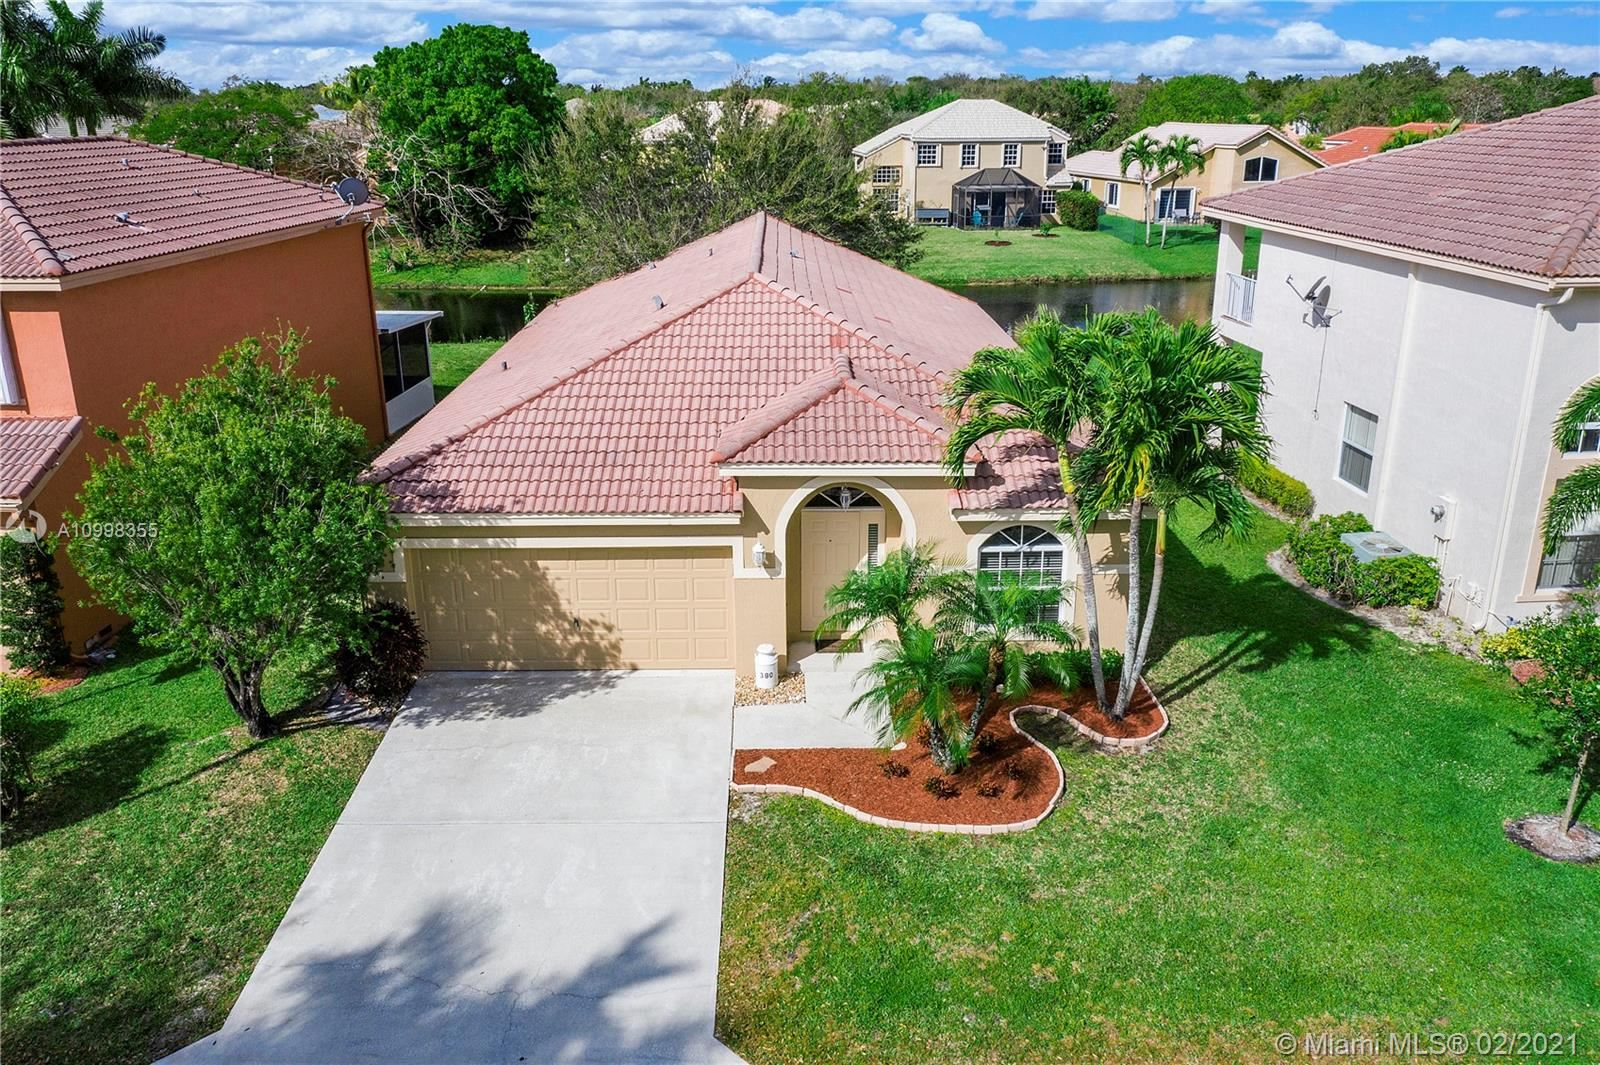 380 NW 115th Way, Coral Springs, FL 33071 - #: A10998355